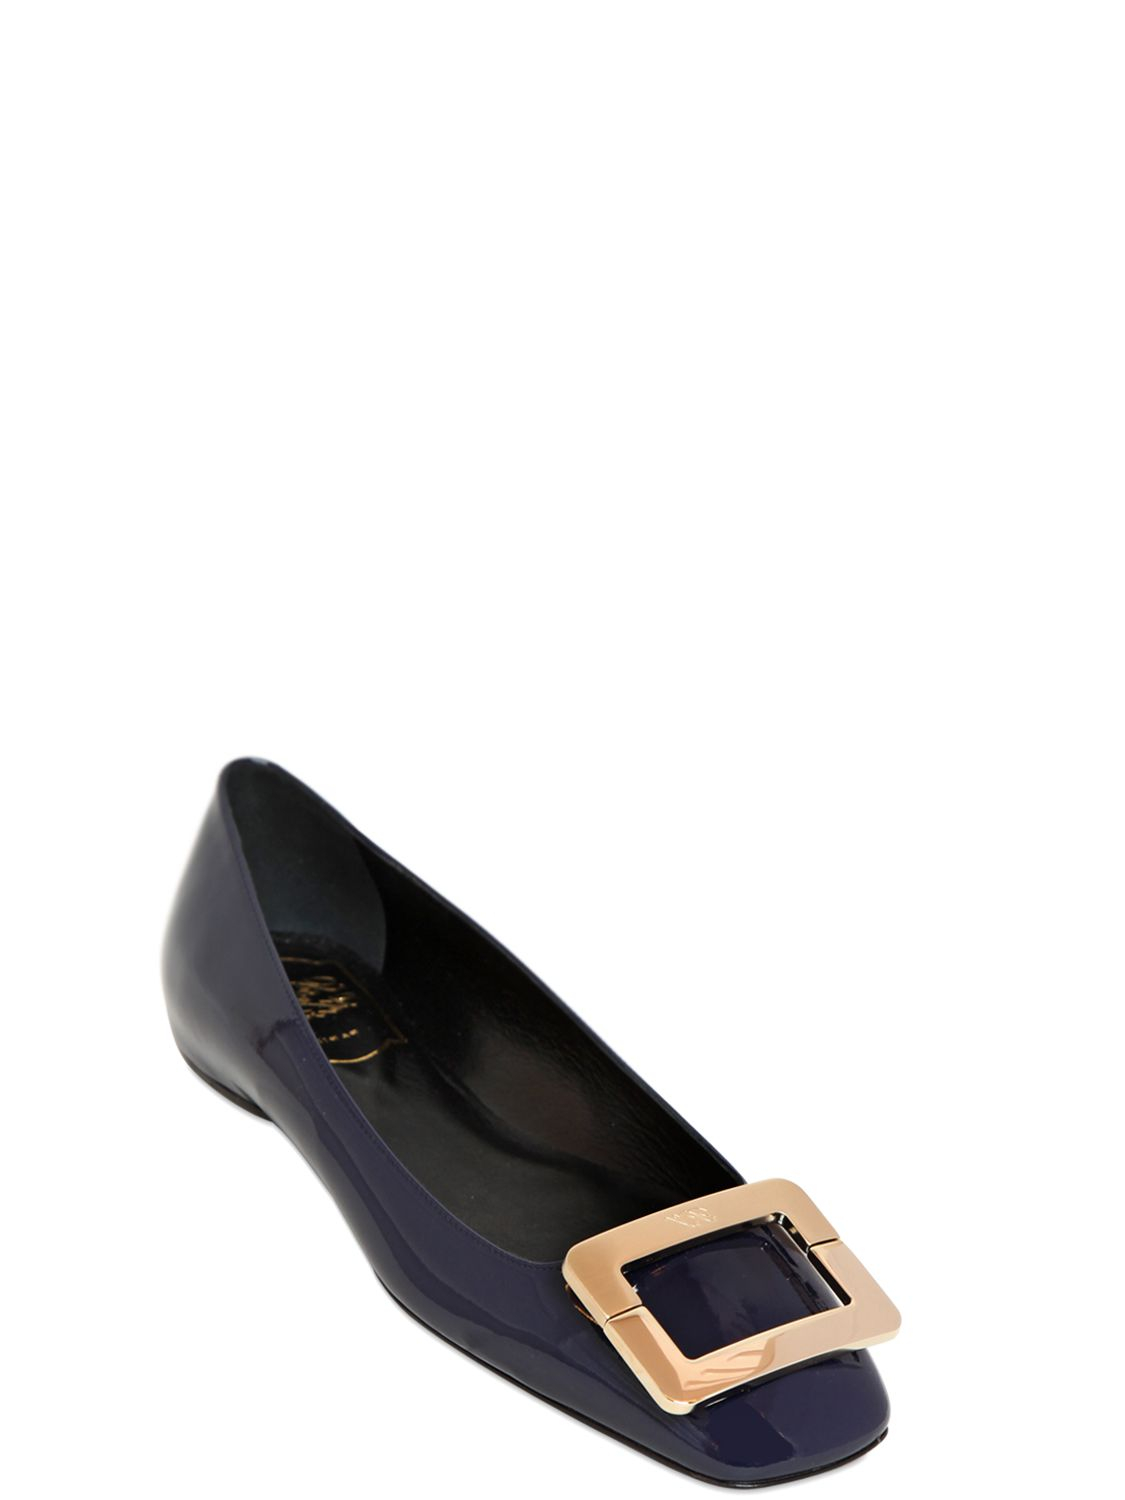 Roger Vivier Patent Leather Flats